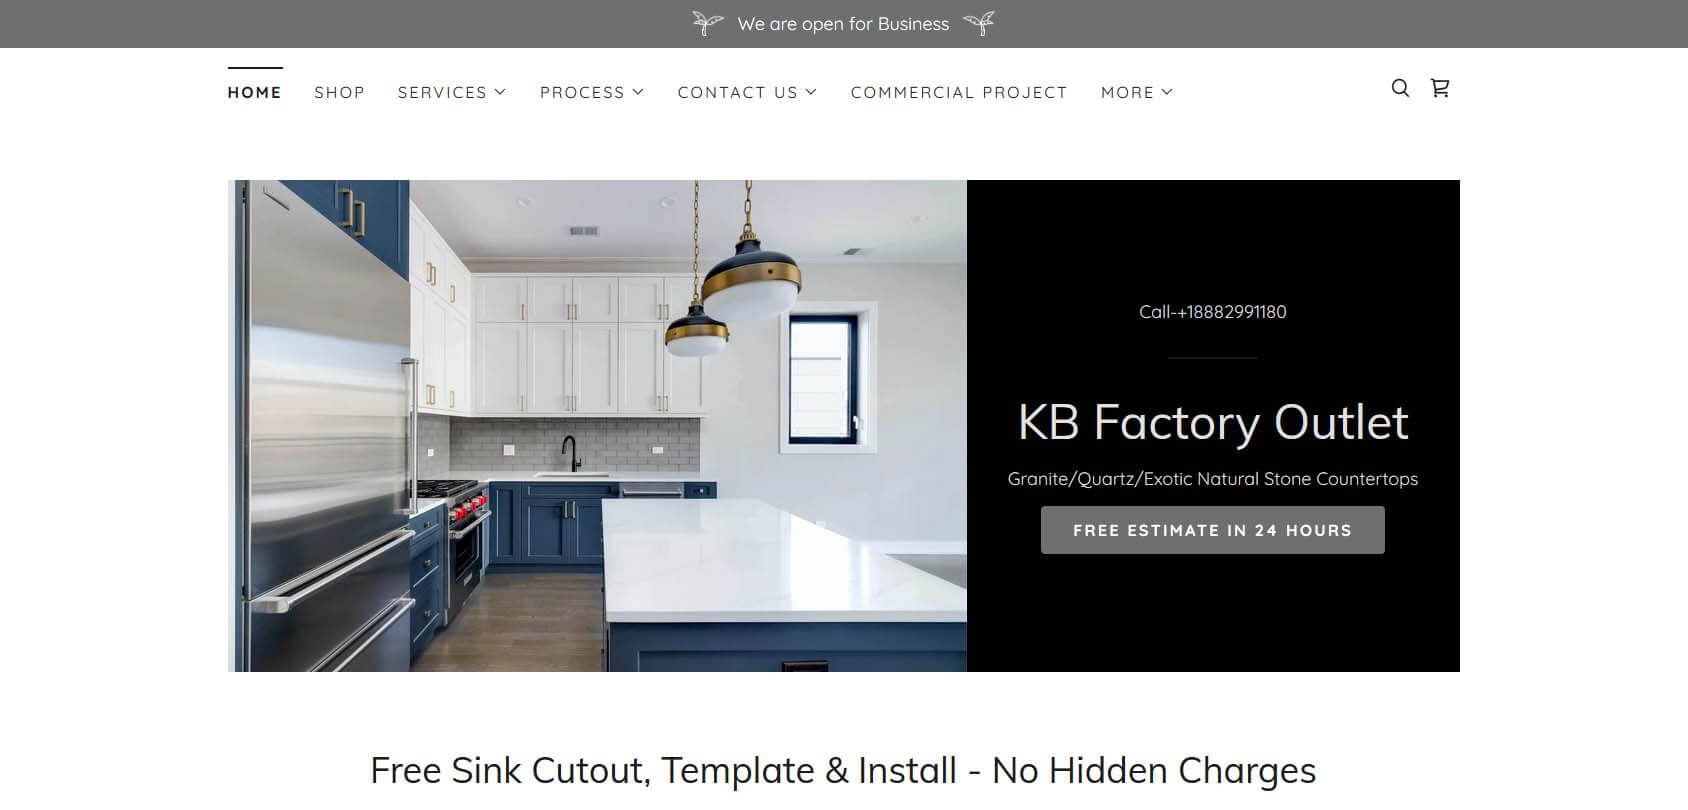 KB Factory Outlet Homepage